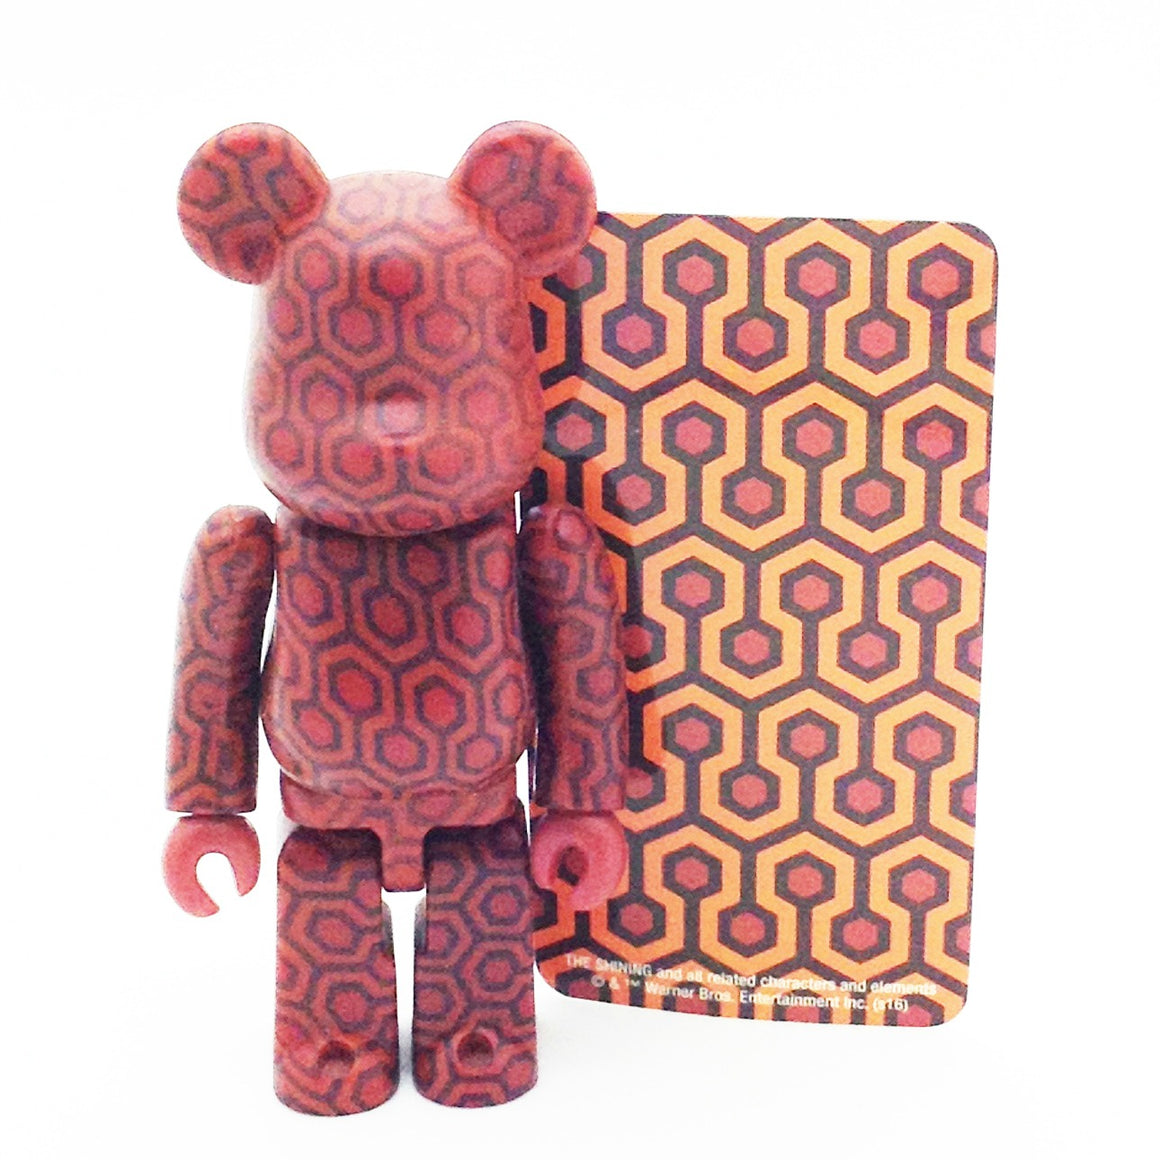 Bearbrick Series 33 - Pattern (The Shining)